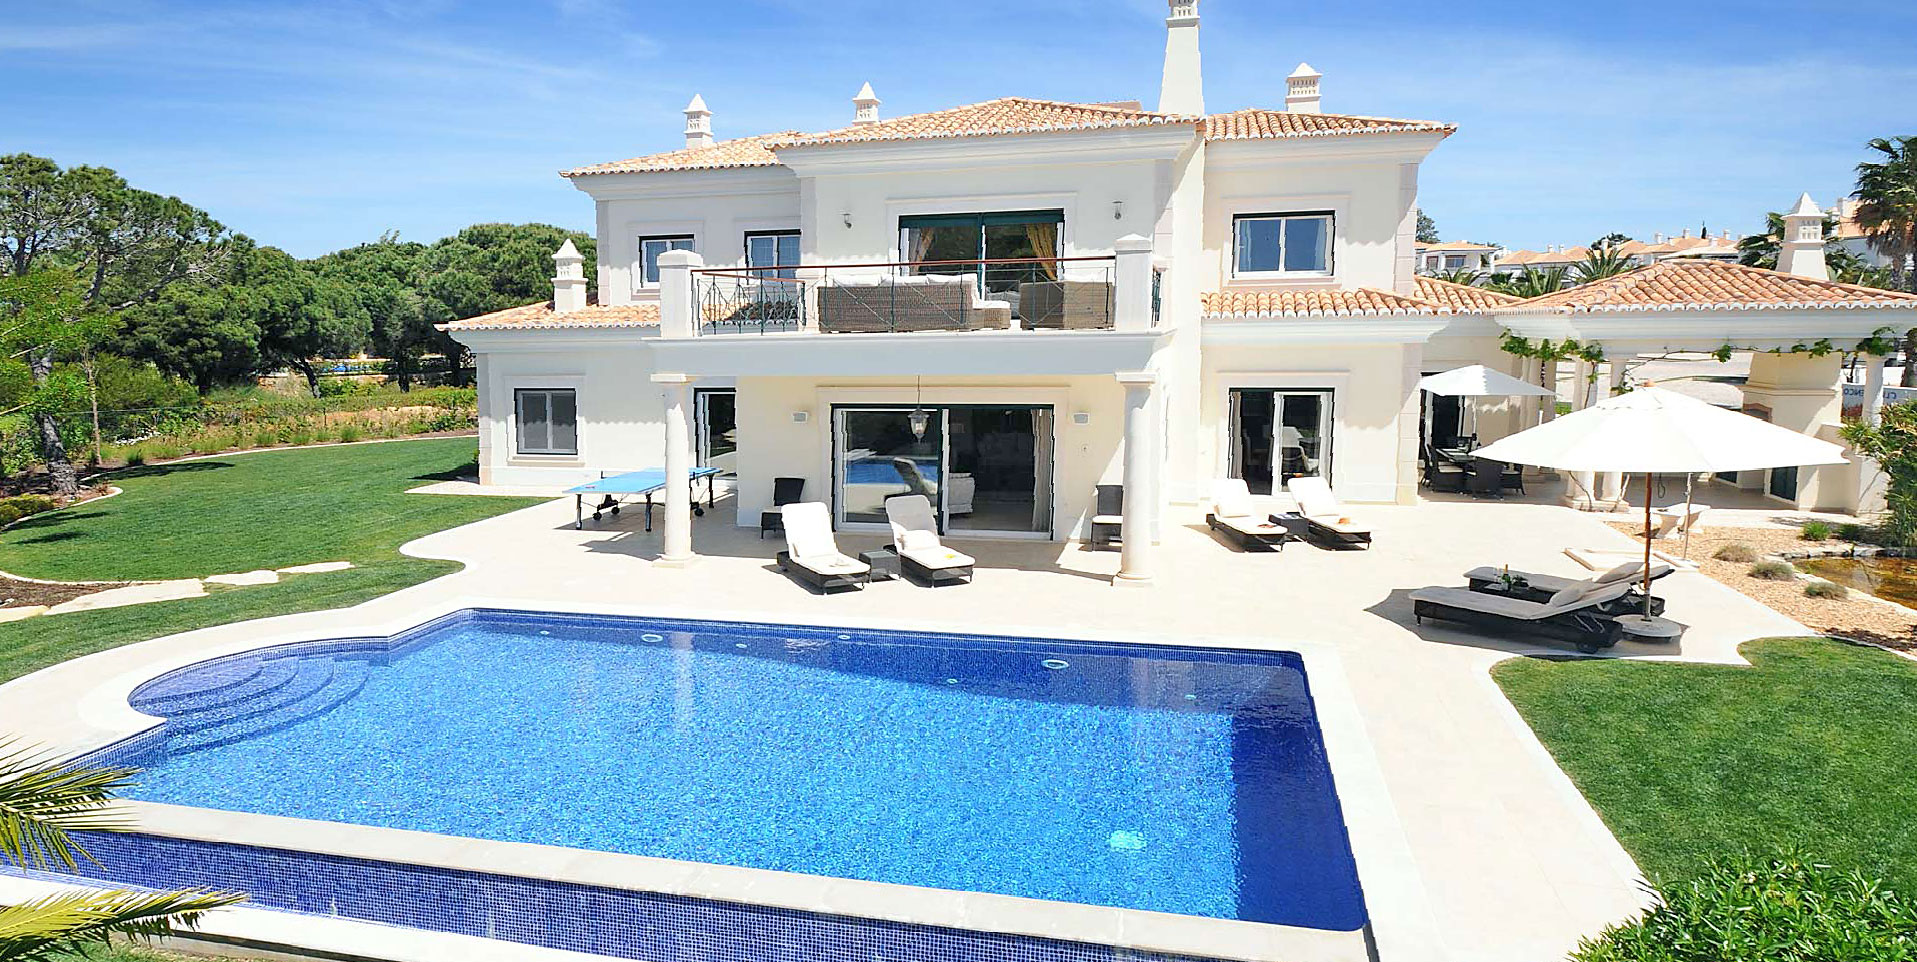 Luxury holiday homes in Javea